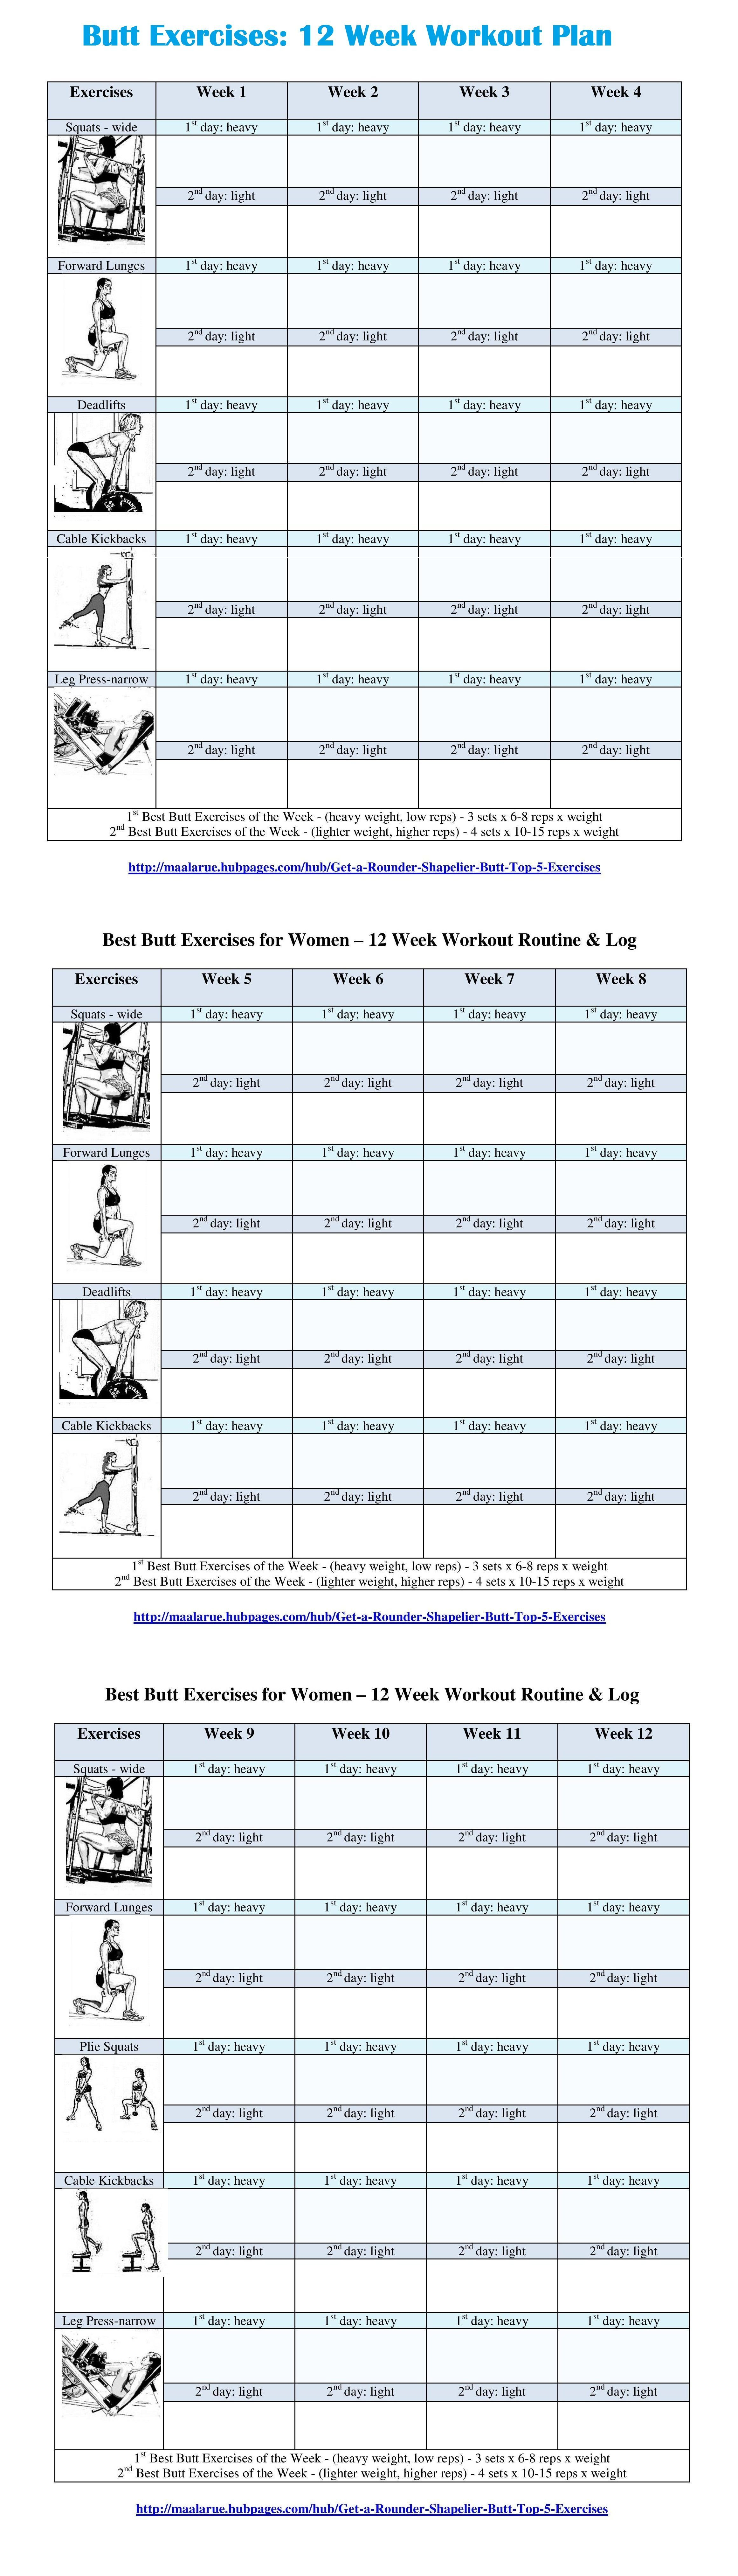 Best Butt Workouts For Women - Free Printable 12 Week Butt Workout - Free Printable Gym Workout Routines